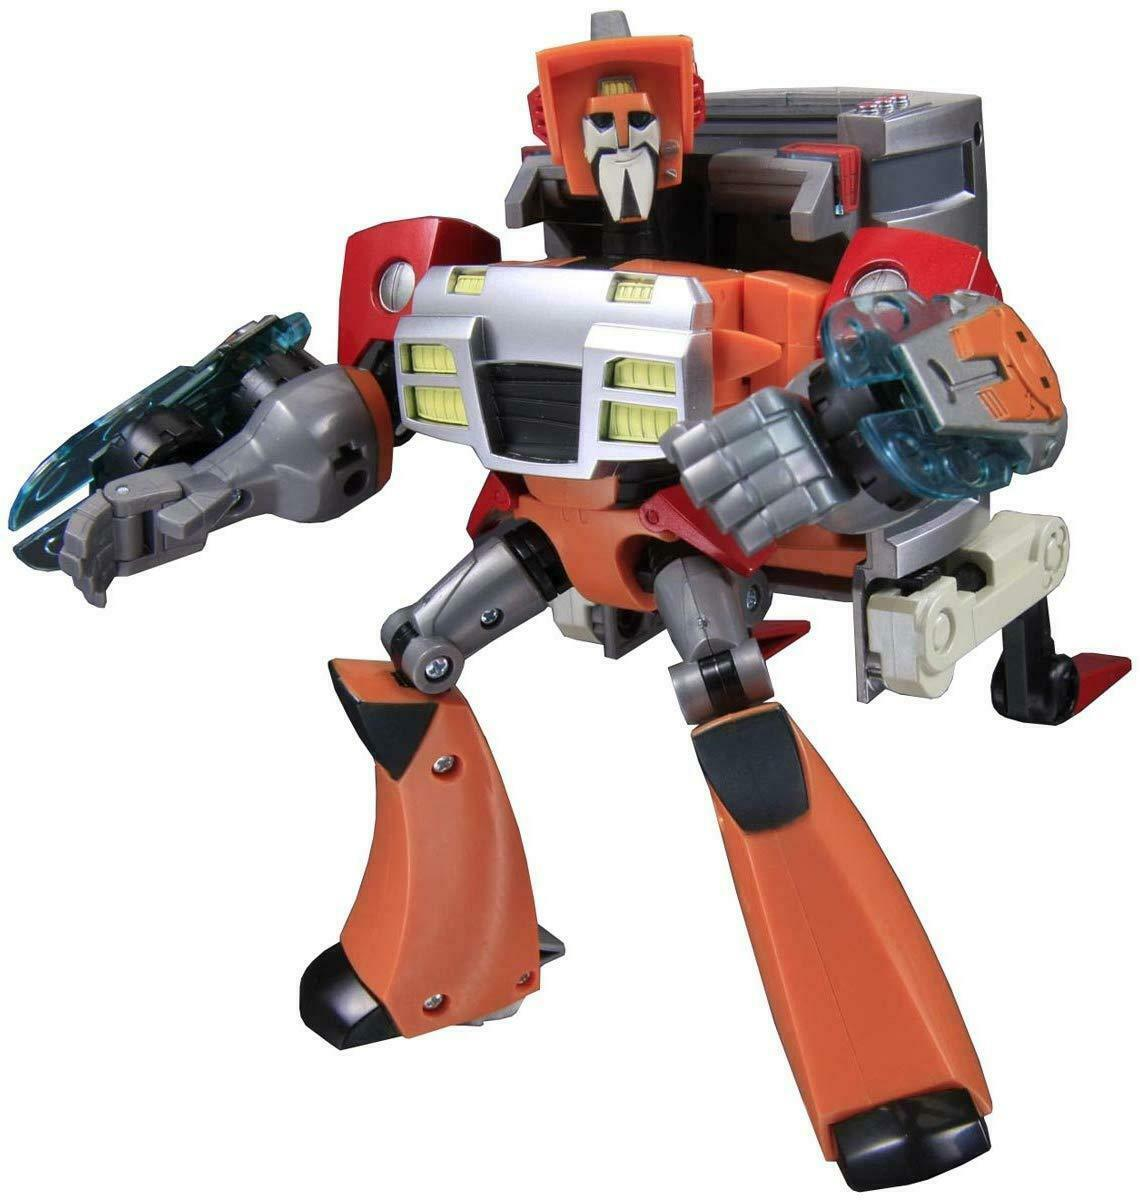 Transformers Japanese animated TA32 Wreck Gar azione cifra USA In Stock